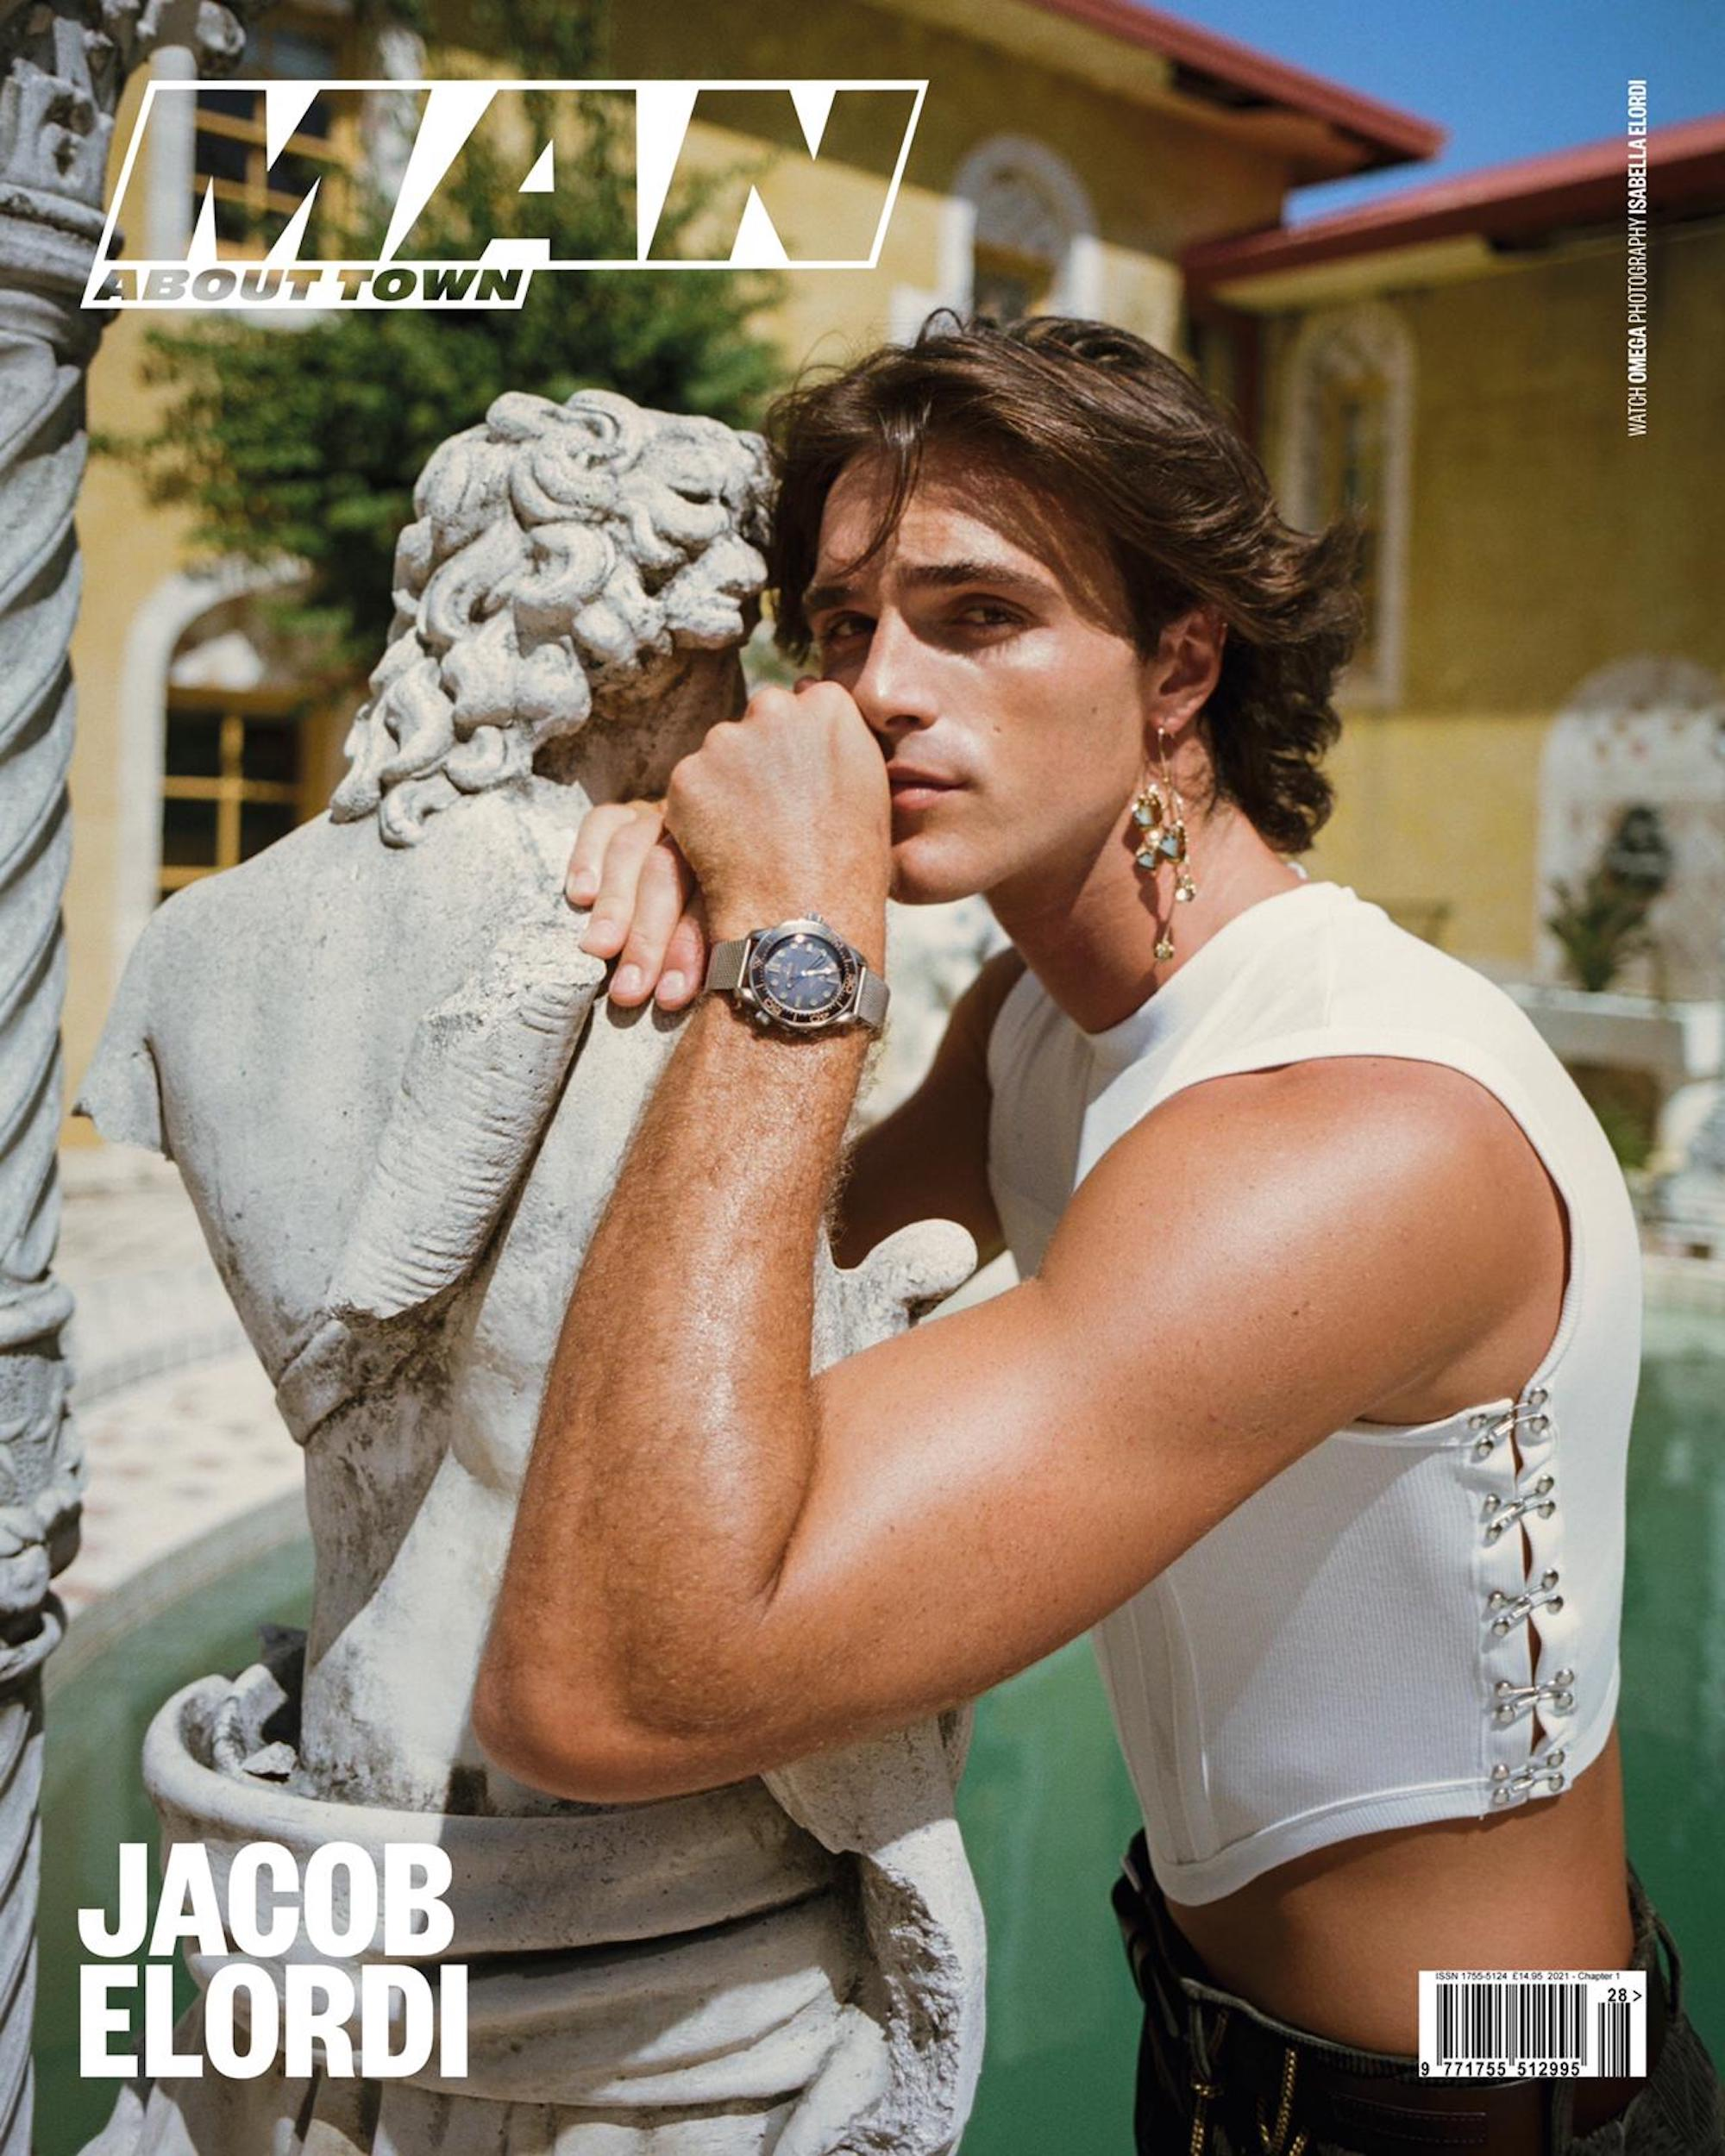 Jacob Elordi on the cover of Man About Town